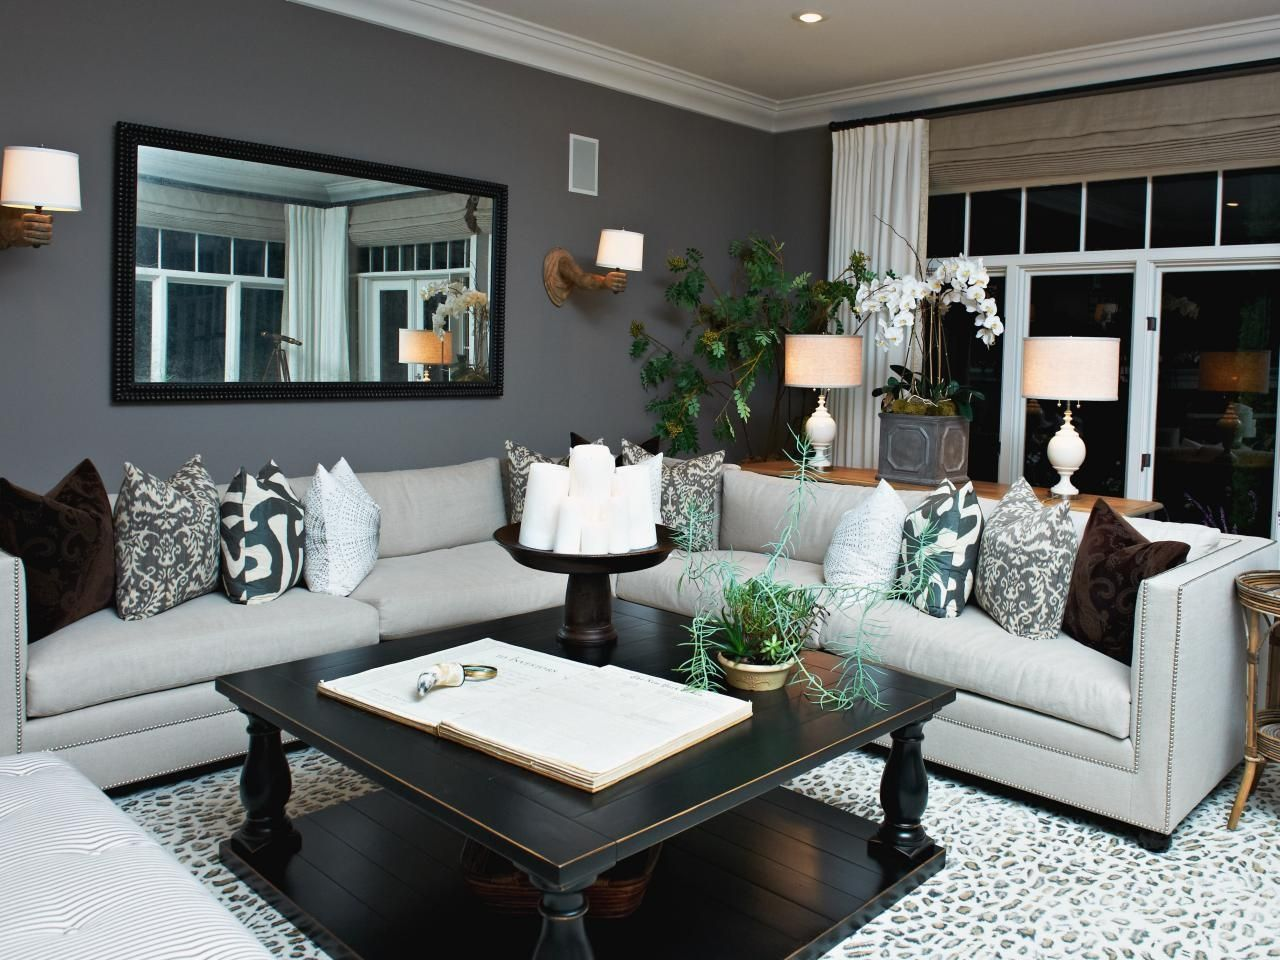 Exceptionnel Cozy Living Room Ideas | See More At Http://diningandlivingroom.com/